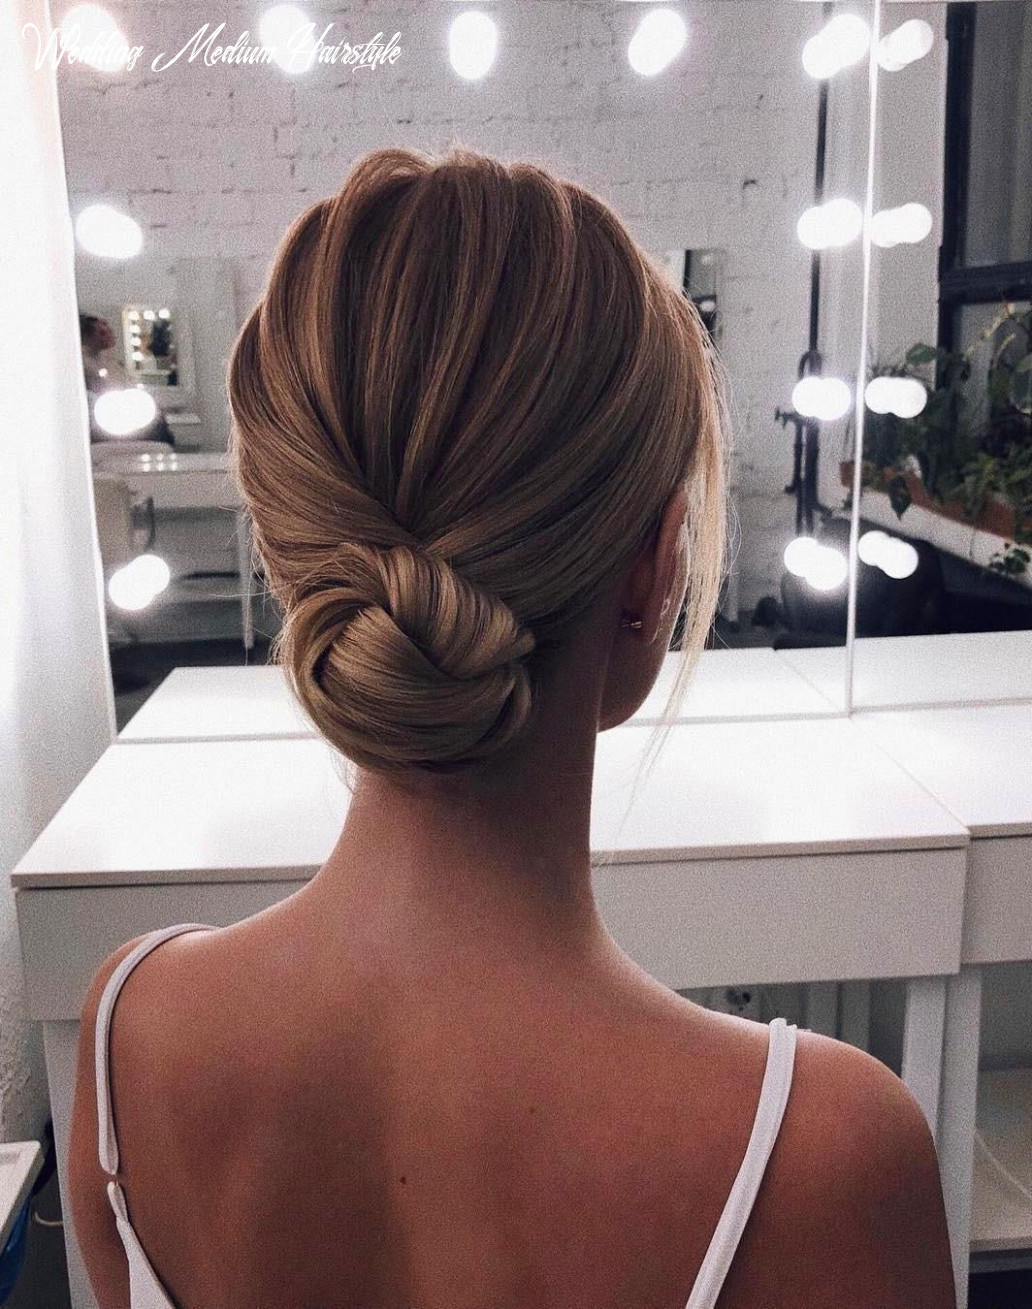 10 beautiful wedding hairstyles for medium length hair in 10